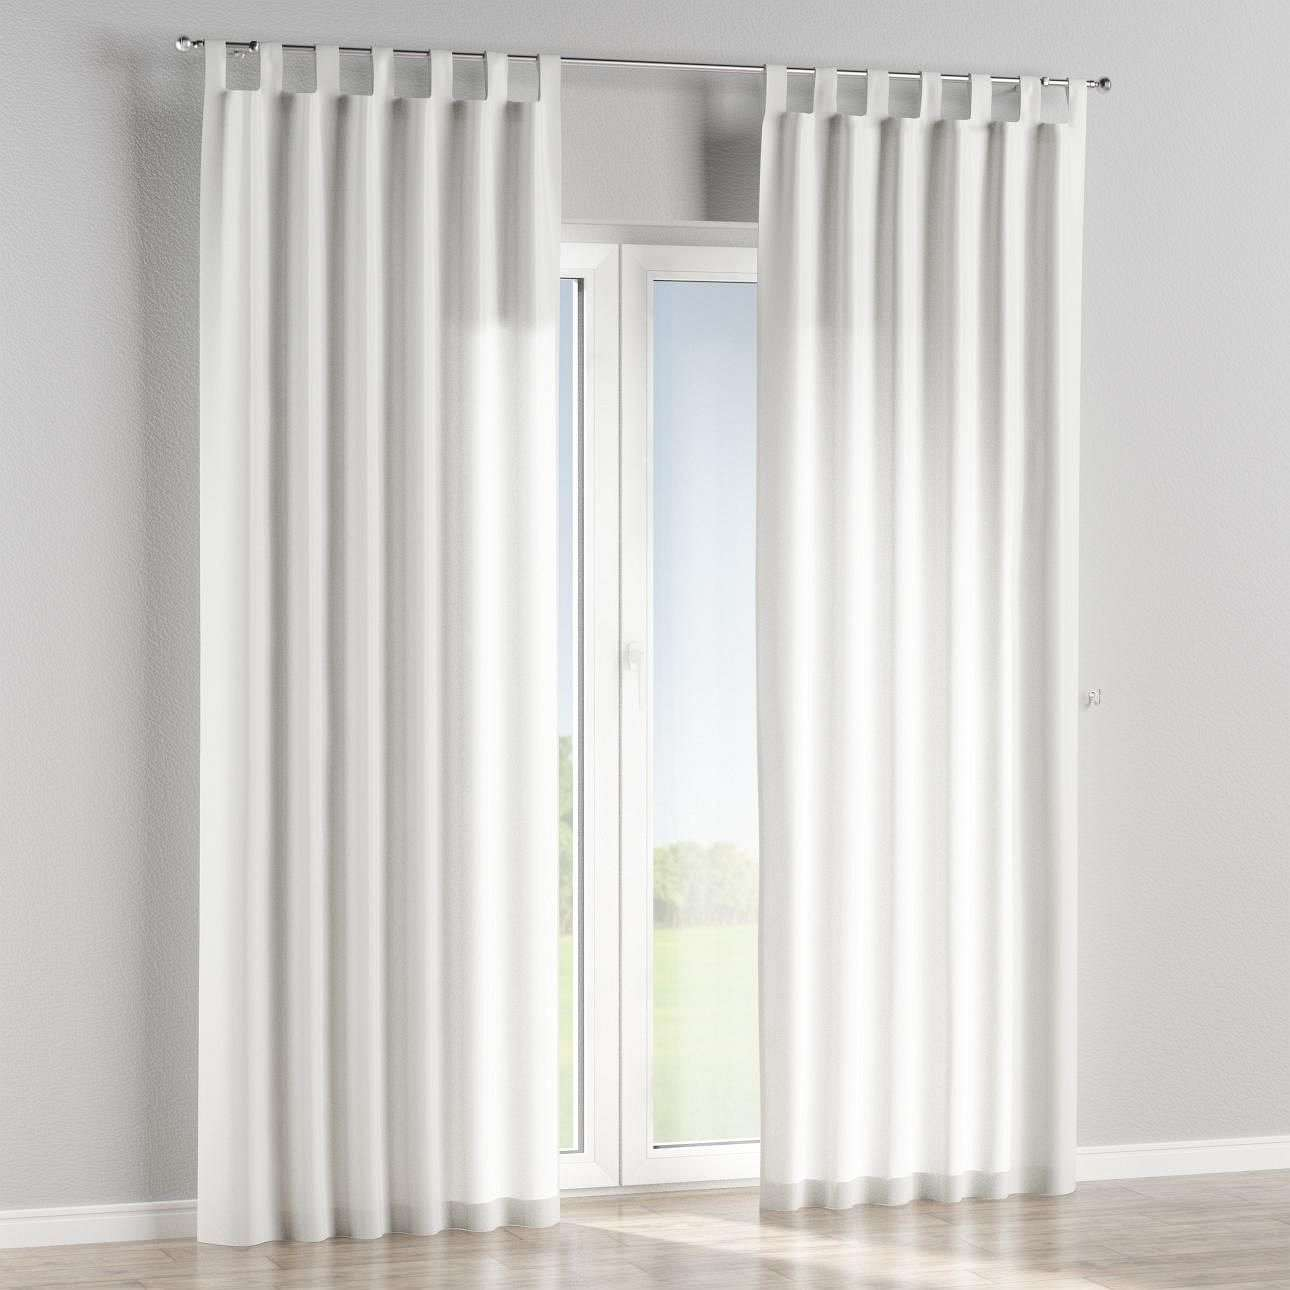 Tab top curtains in collection Rustica, fabric: 140-31